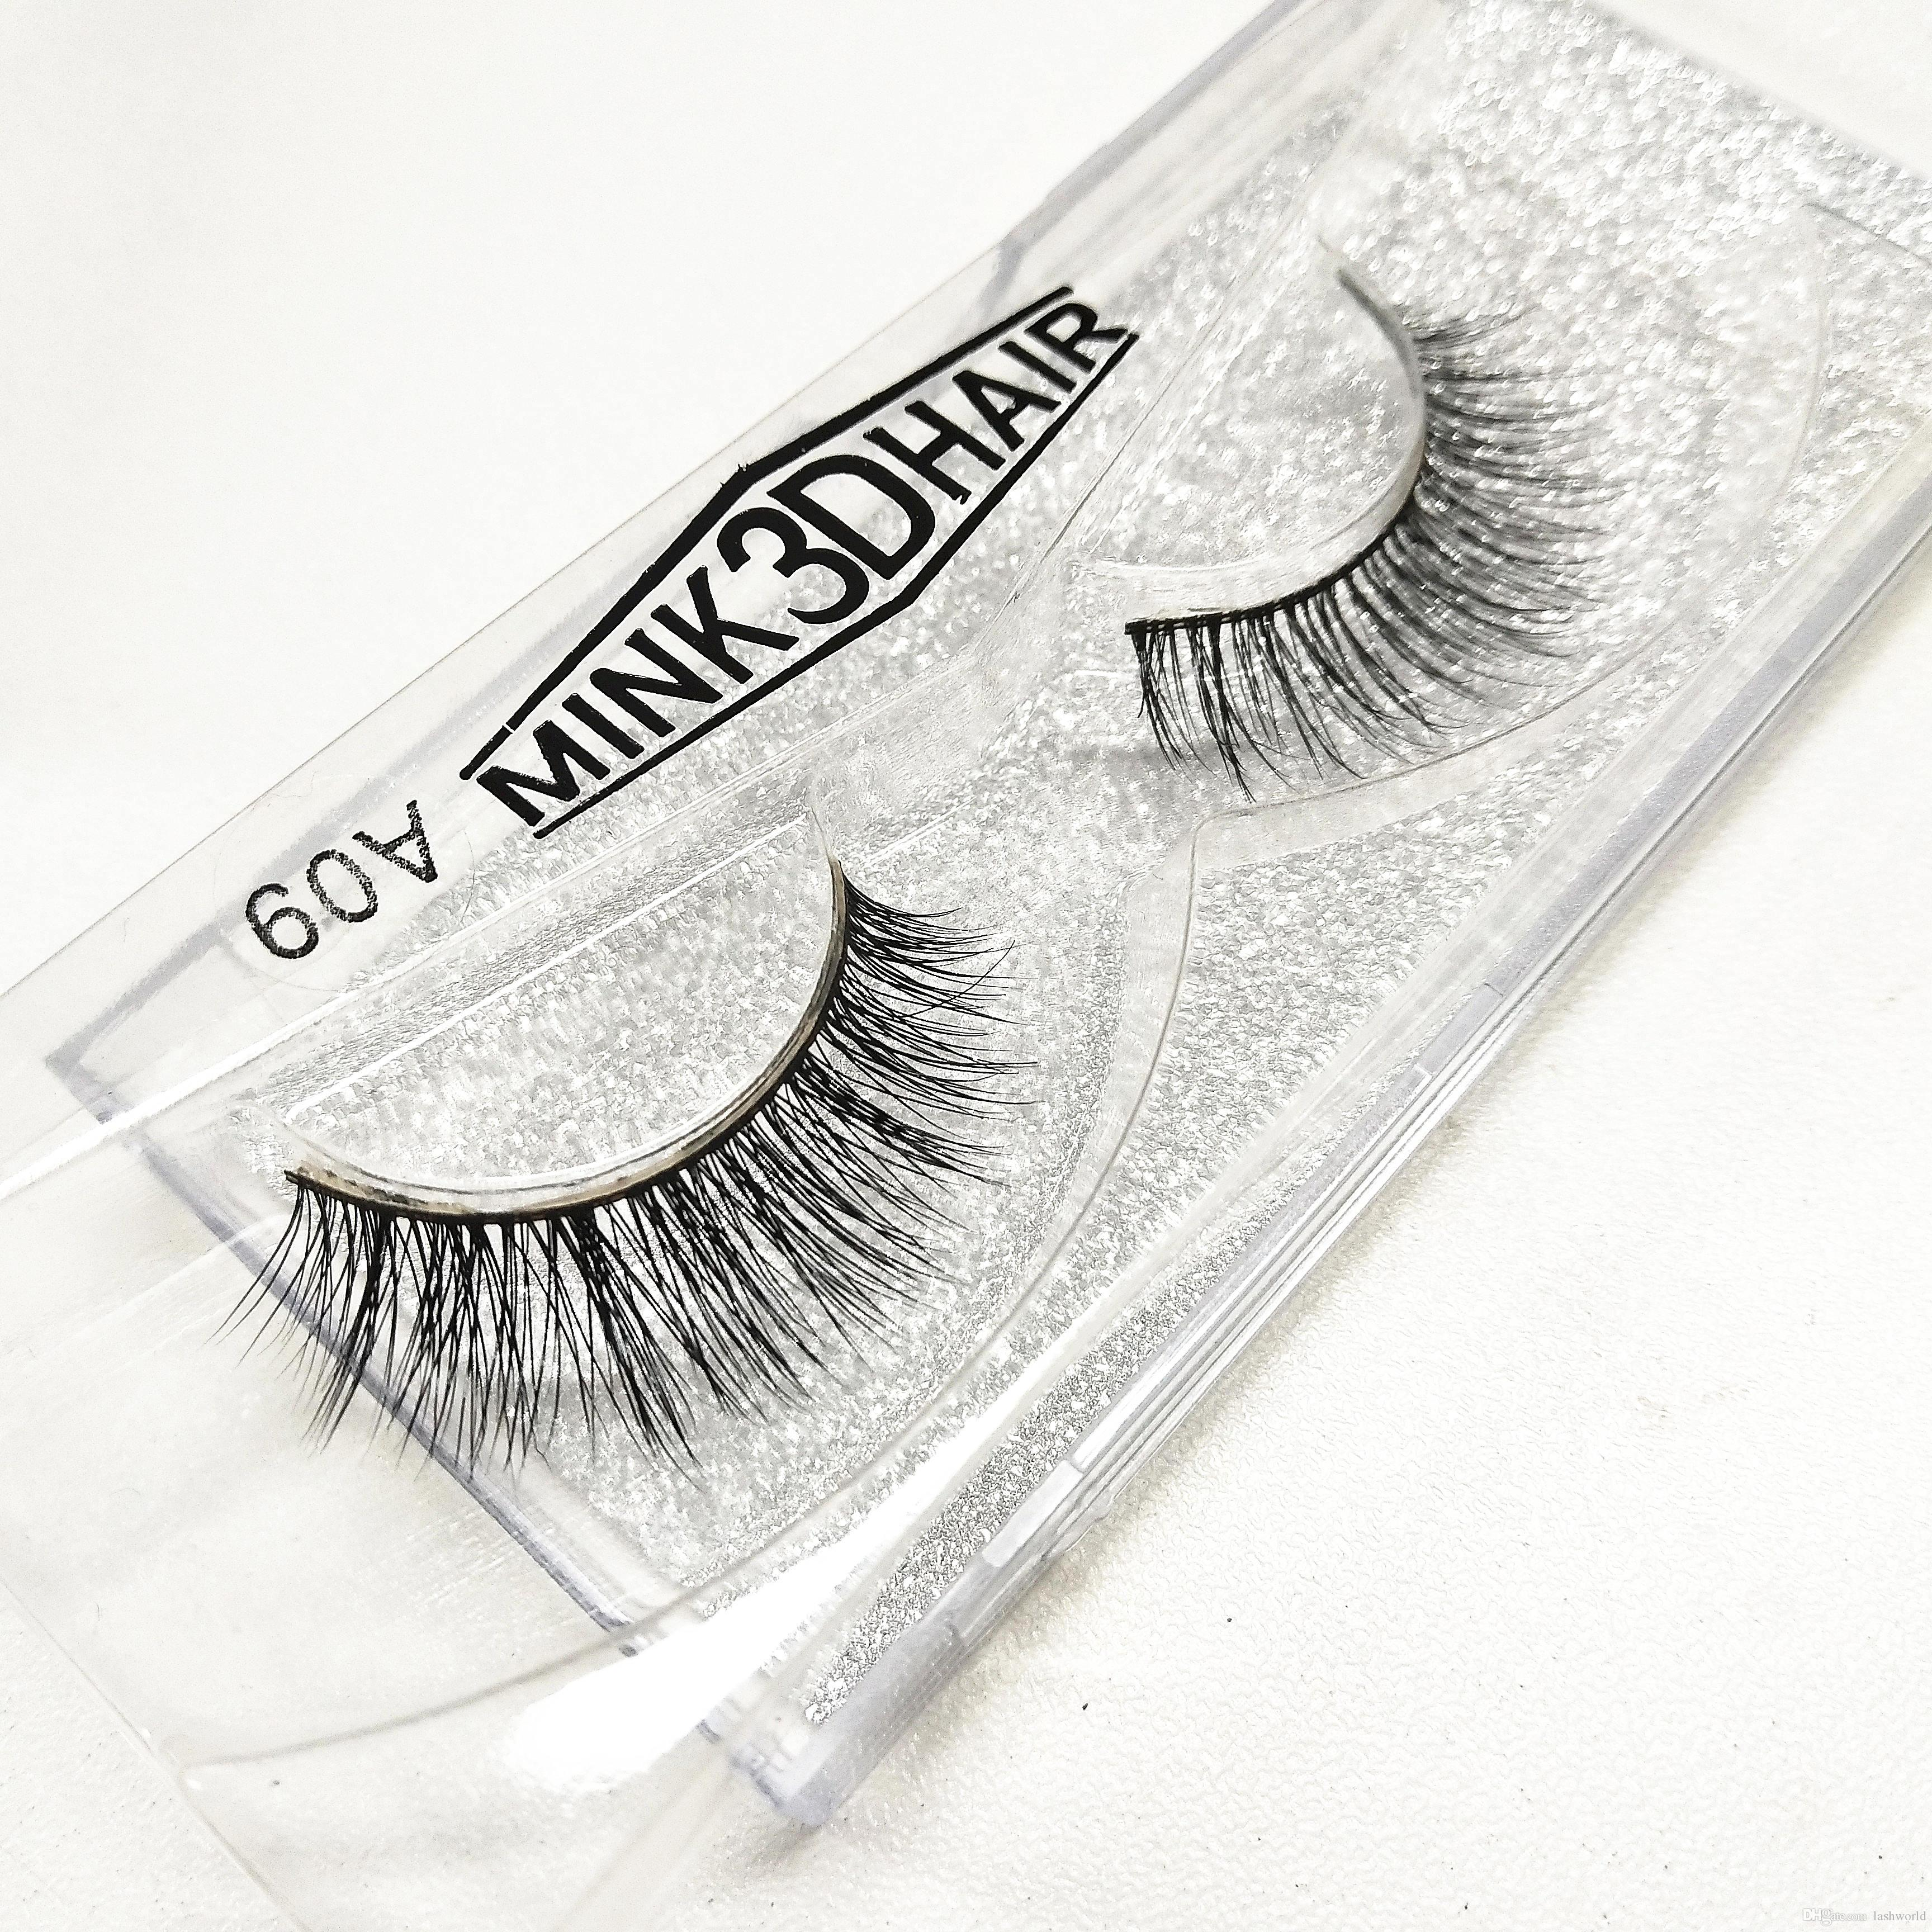 0676d137ace Seashine New Design 3d Real Mink Lashes False Eyelashes False Eyelash 3d  Strip Eyelashes 3D Mink Lashes Private Label False Eyelashes Eyelash  Extensions ...